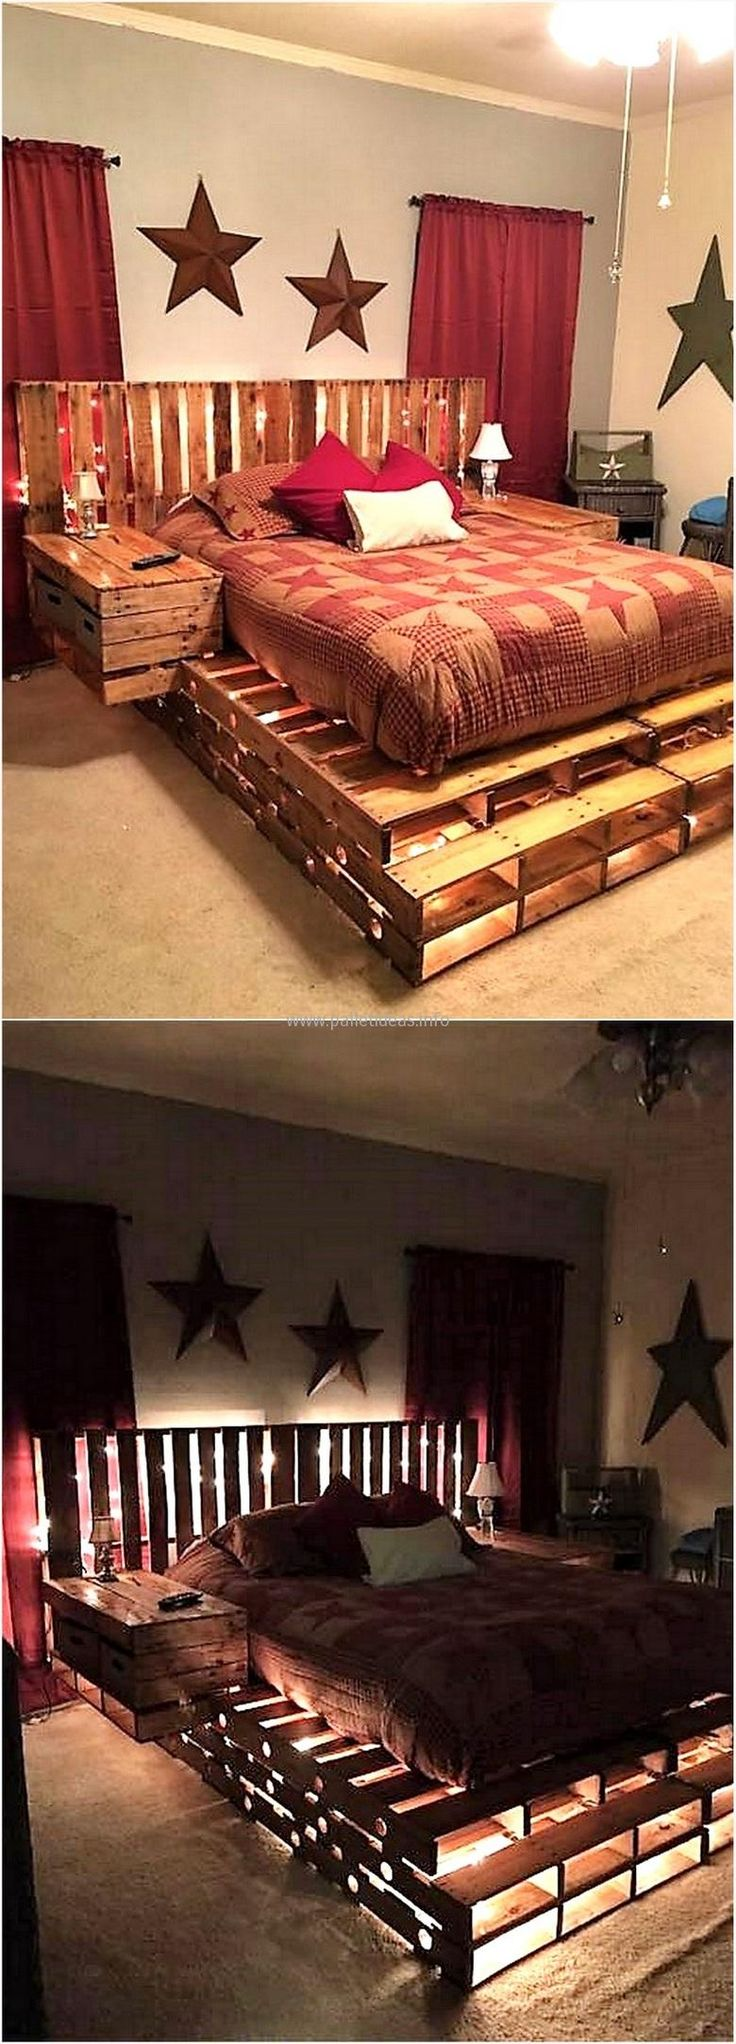 Best 25+ Unique bed frames ideas on Pinterest | King bed frame ...